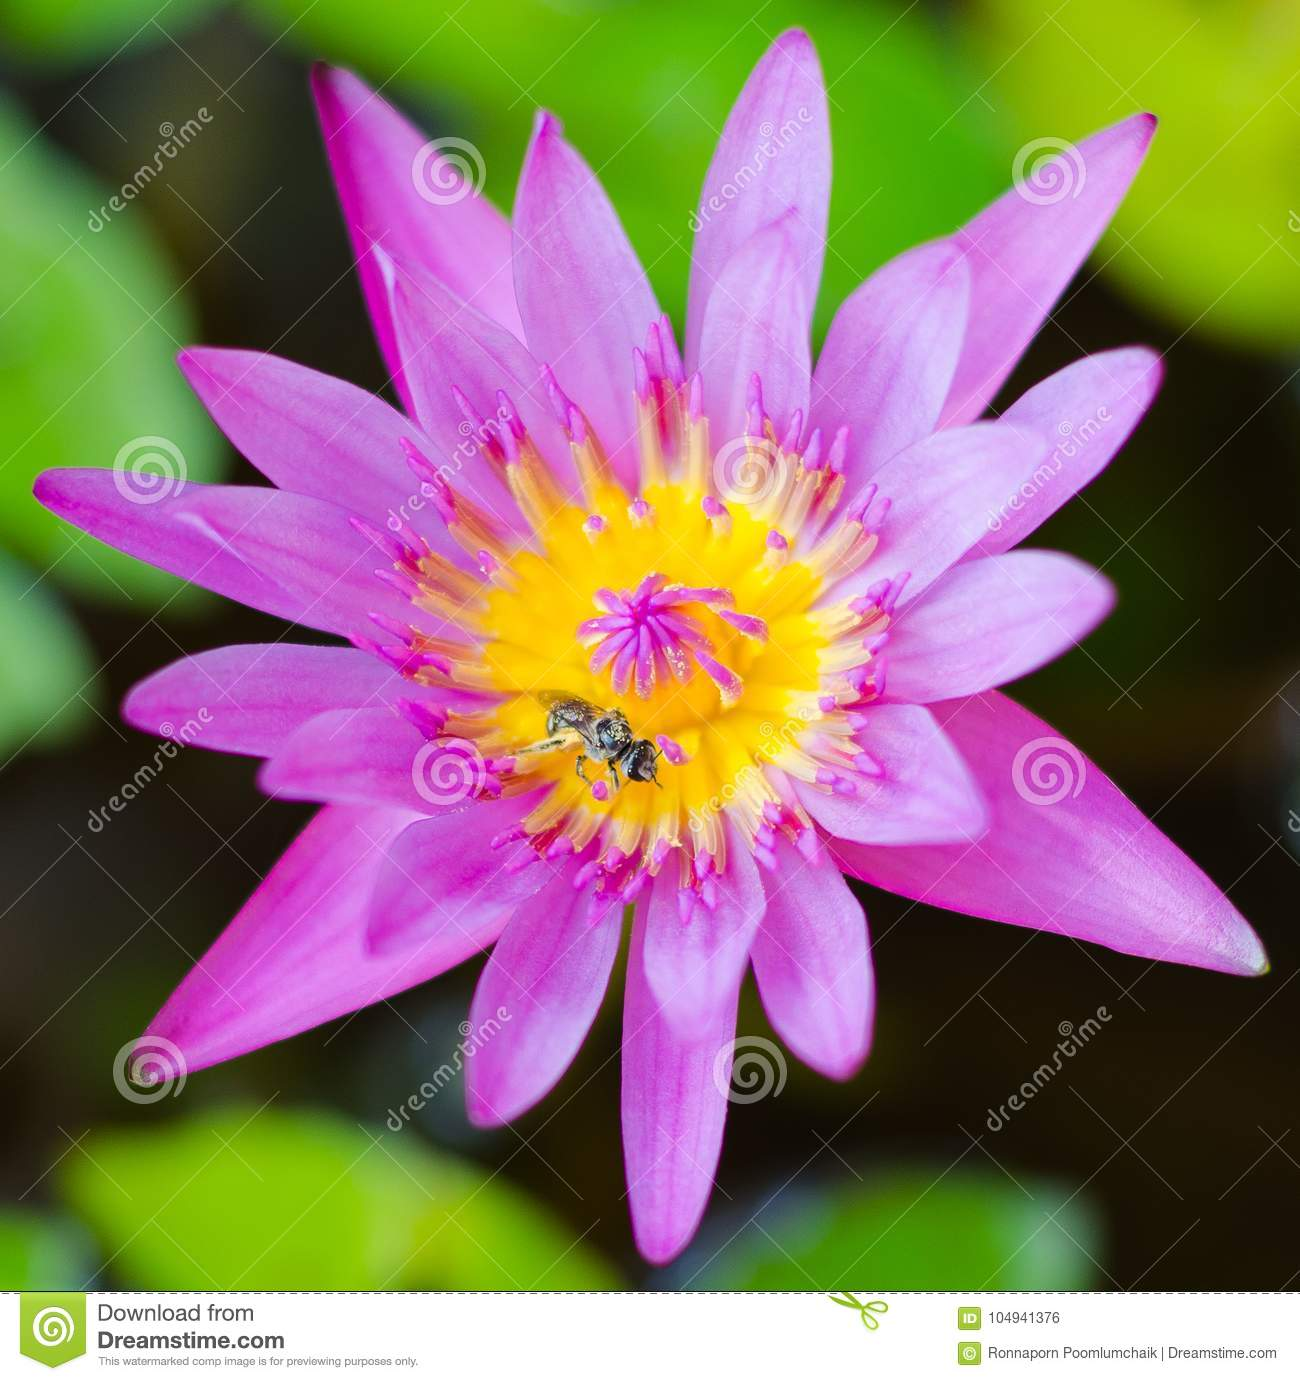 Pink lotus blossoms or water lily flowers blooming on pondpink pink lotus blossoms or water lily flowers blooming on pondpink izmirmasajfo